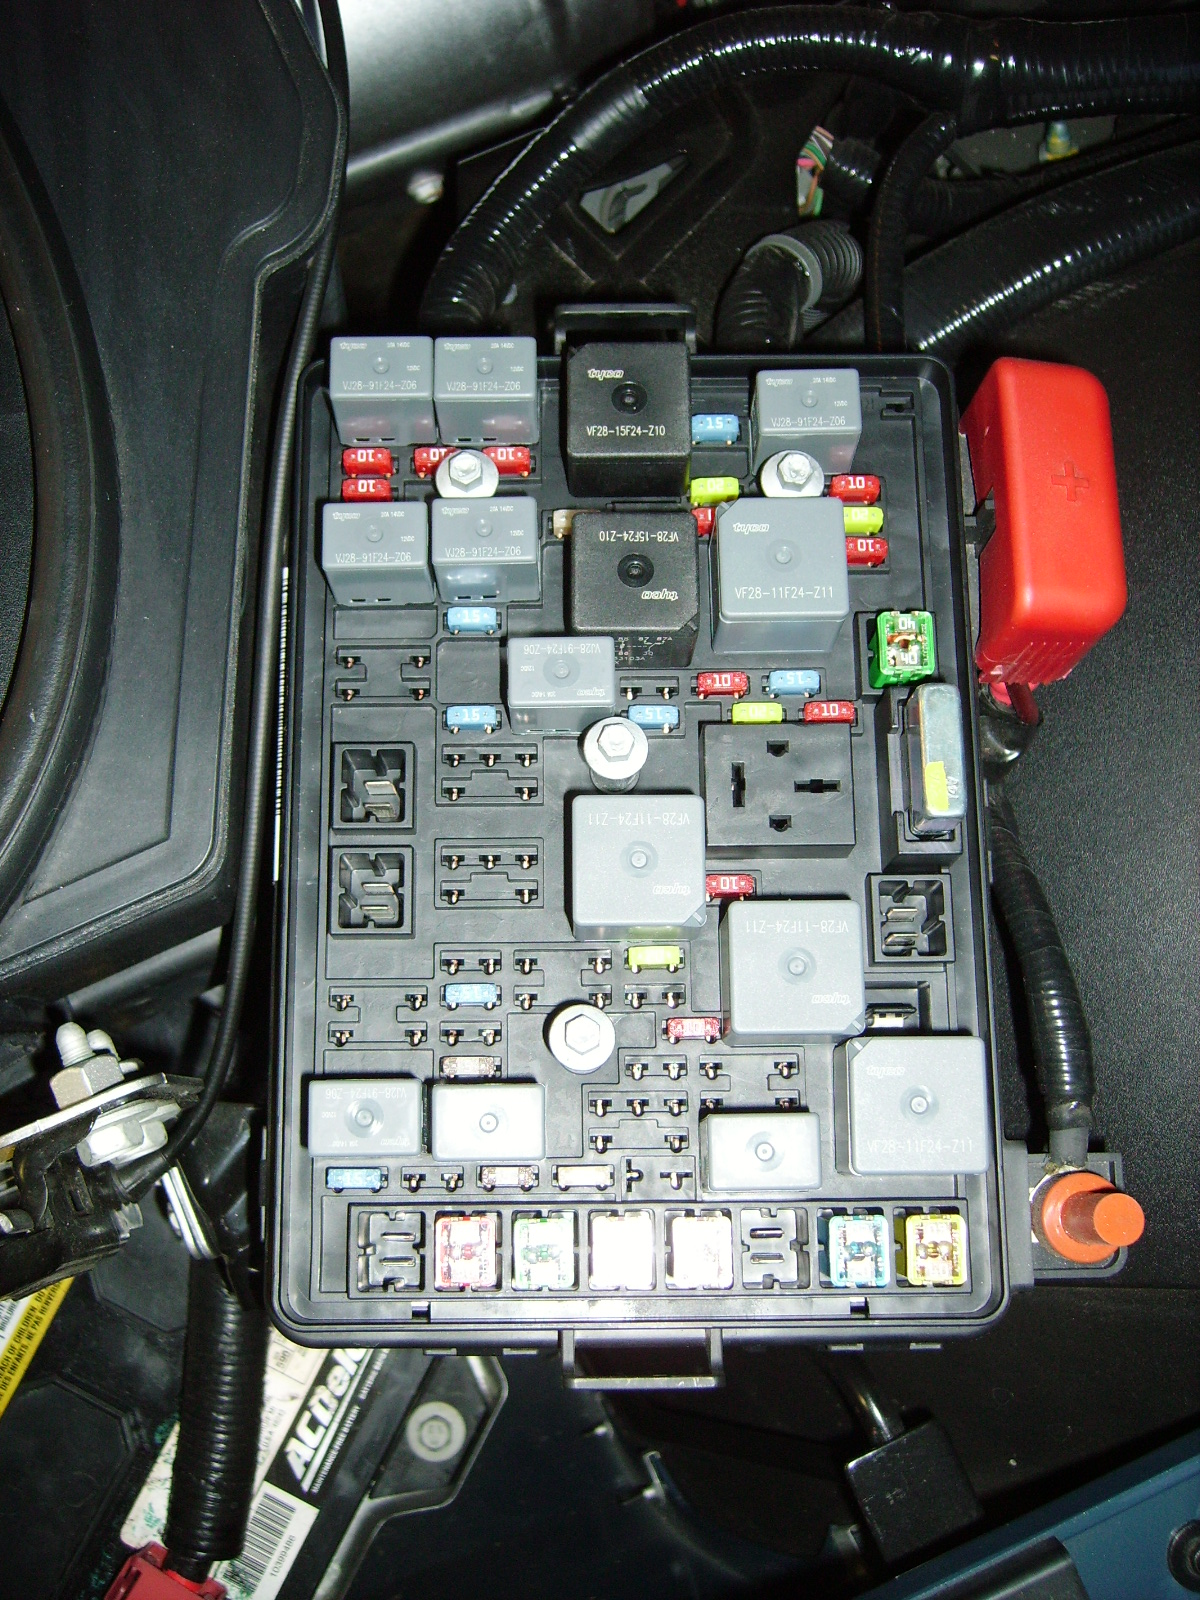 Saturn Ion Fuse Box Simple Wiring Schema Electrical Service 2005 Diagram Schematics Power Steering Reservoir